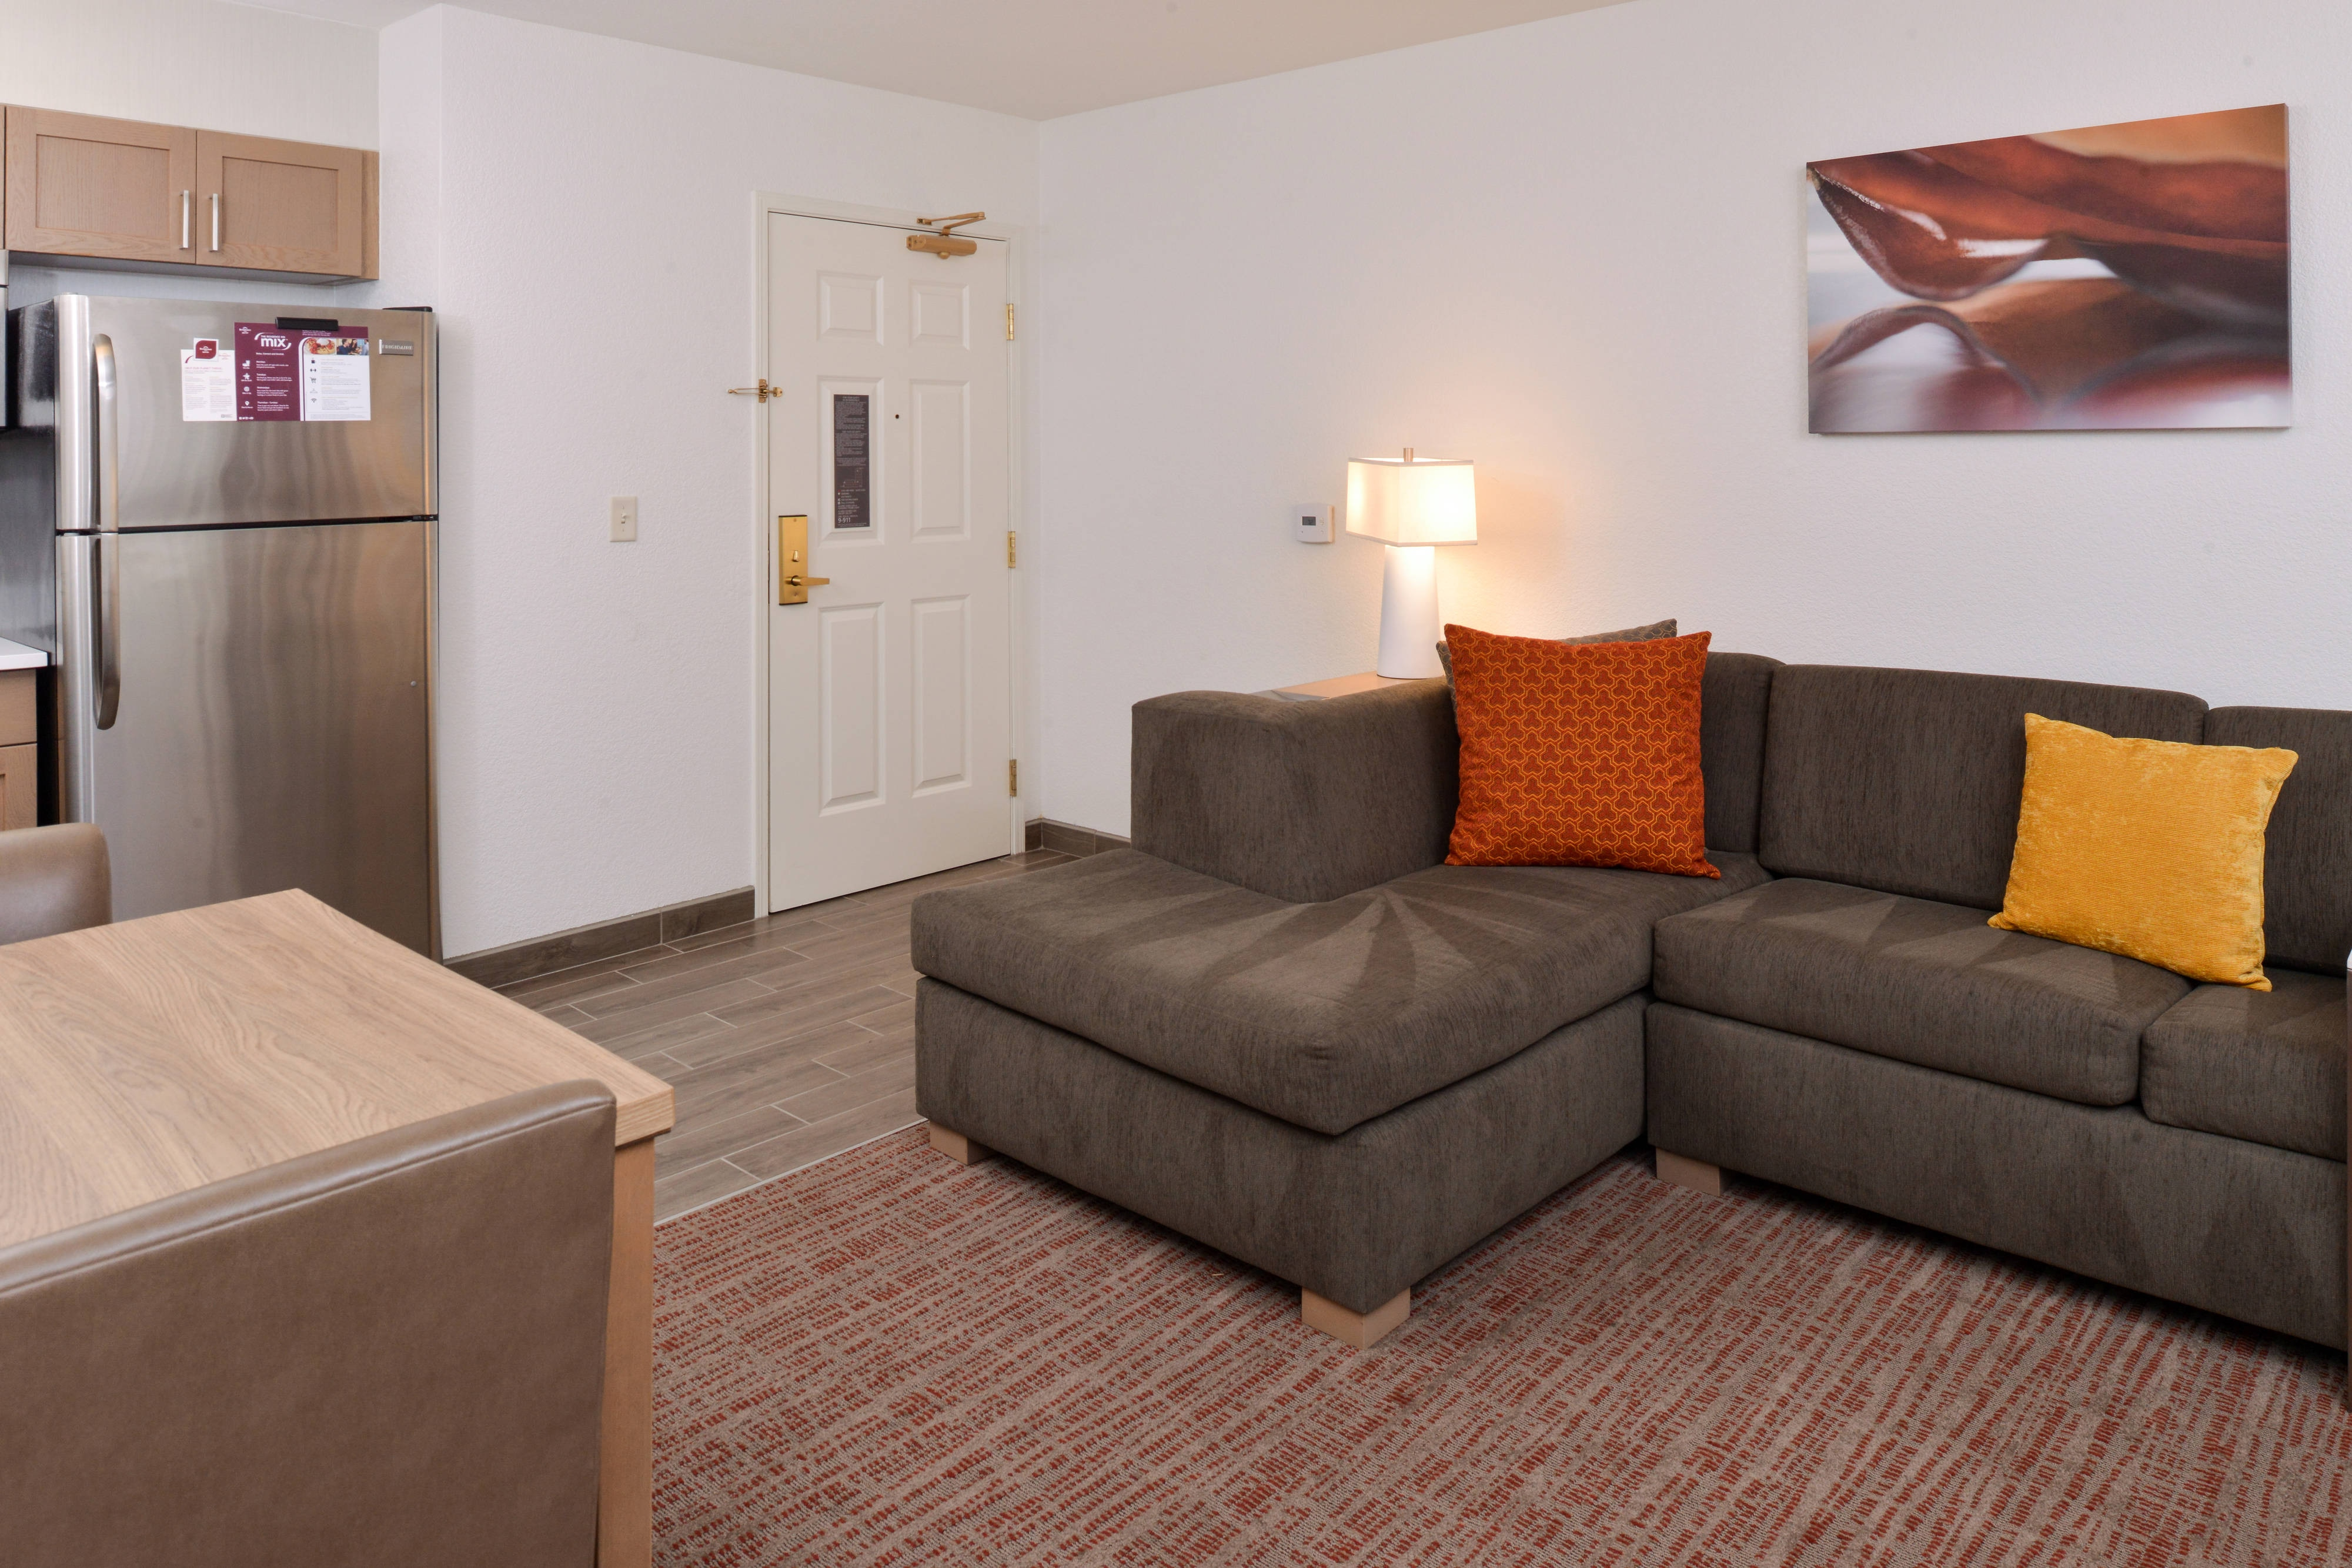 extended stay suites with living areas in Palo Alto CA